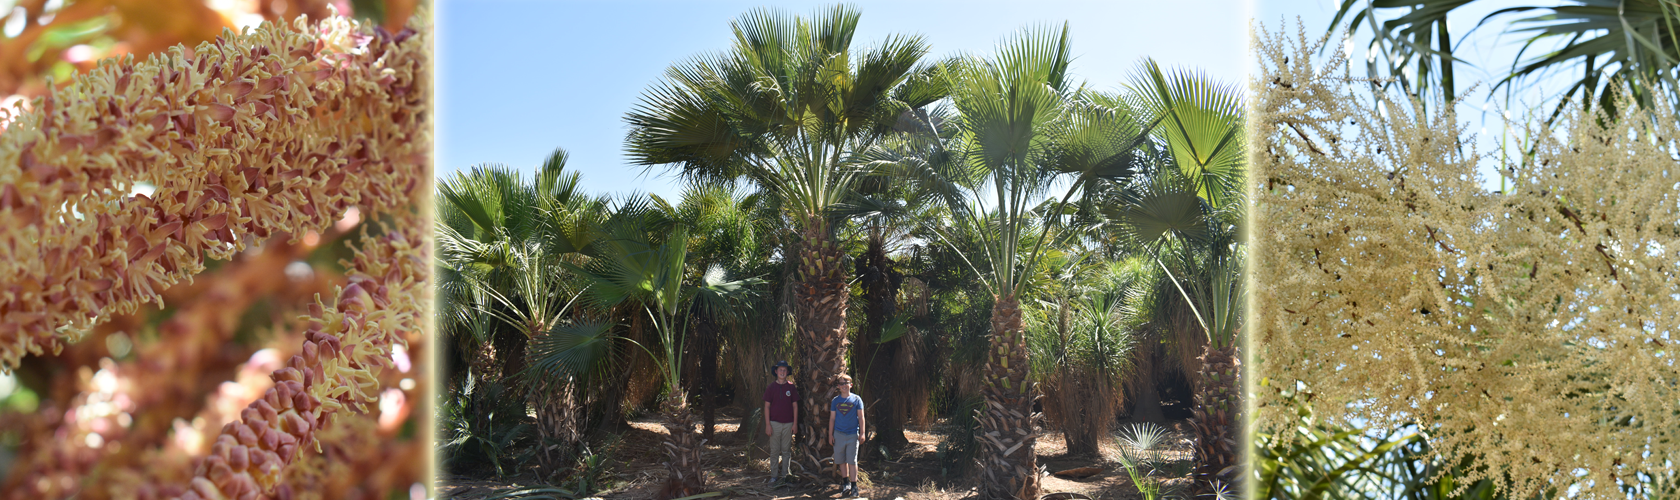 Guadalupe palm trees, Brahea edulis, at Madera grove